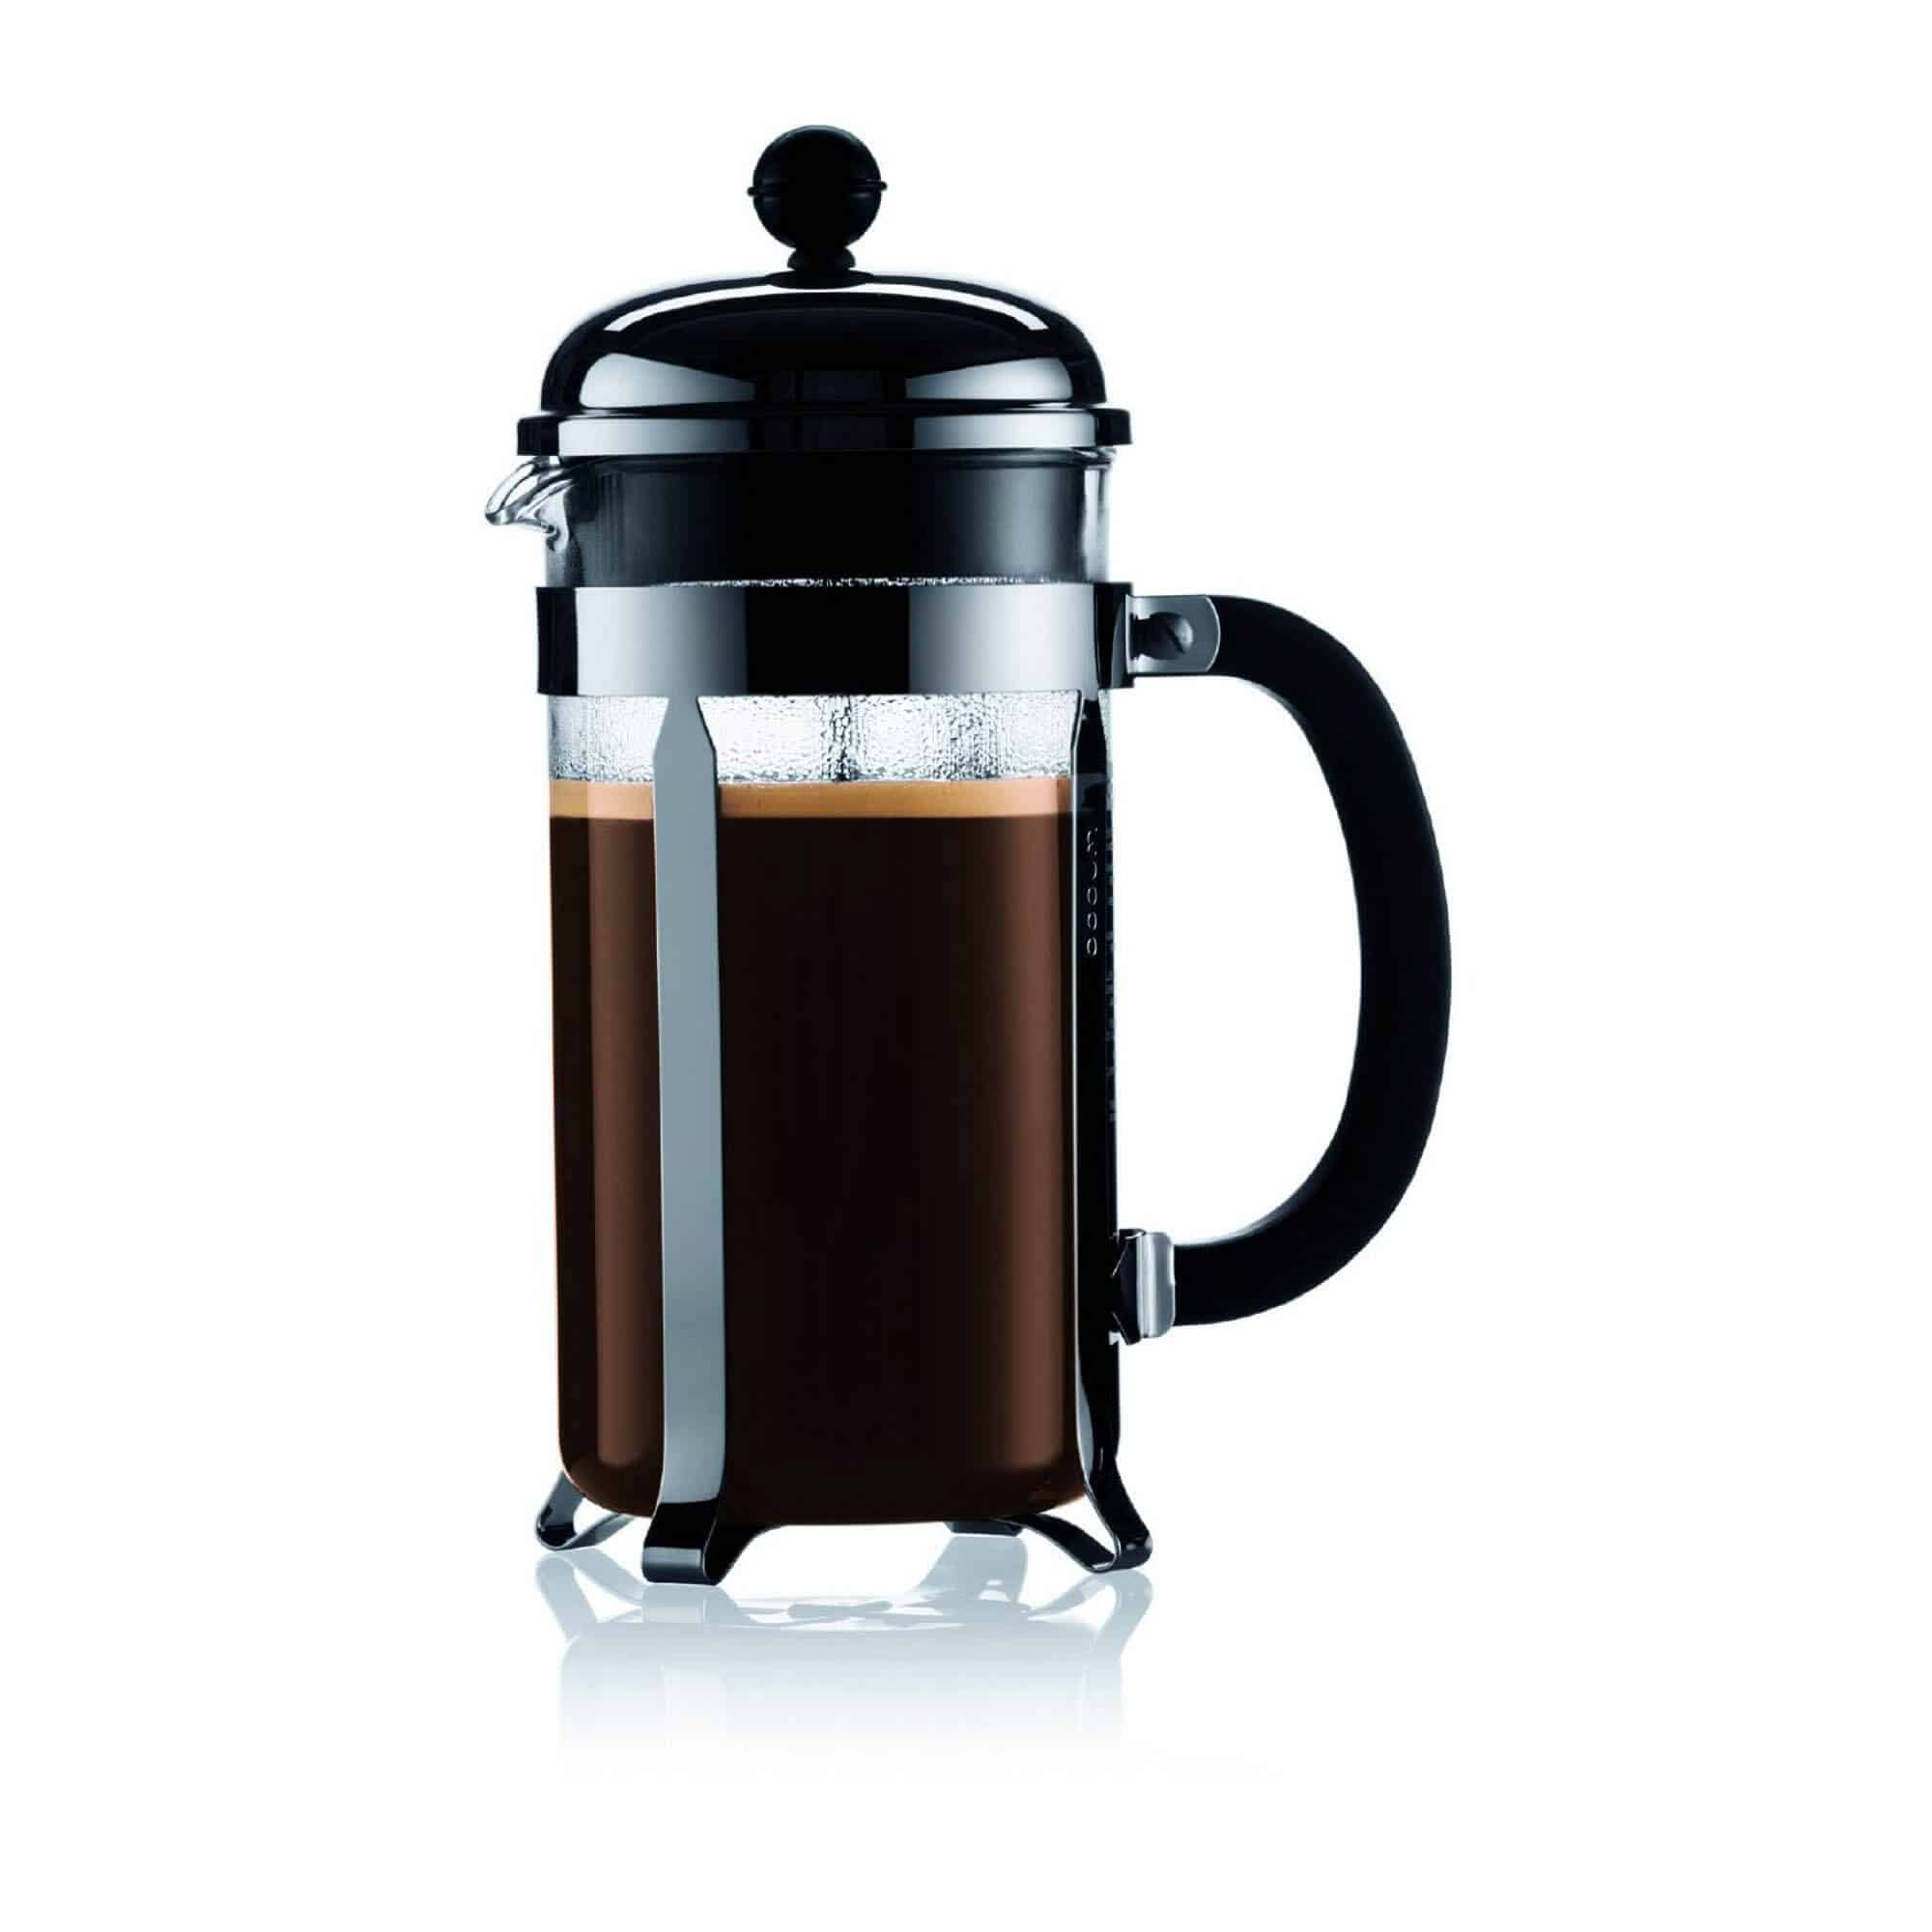 One Cup Coffee Maker Bodum : The Coffee Guide Guide Gentleman s Gazette